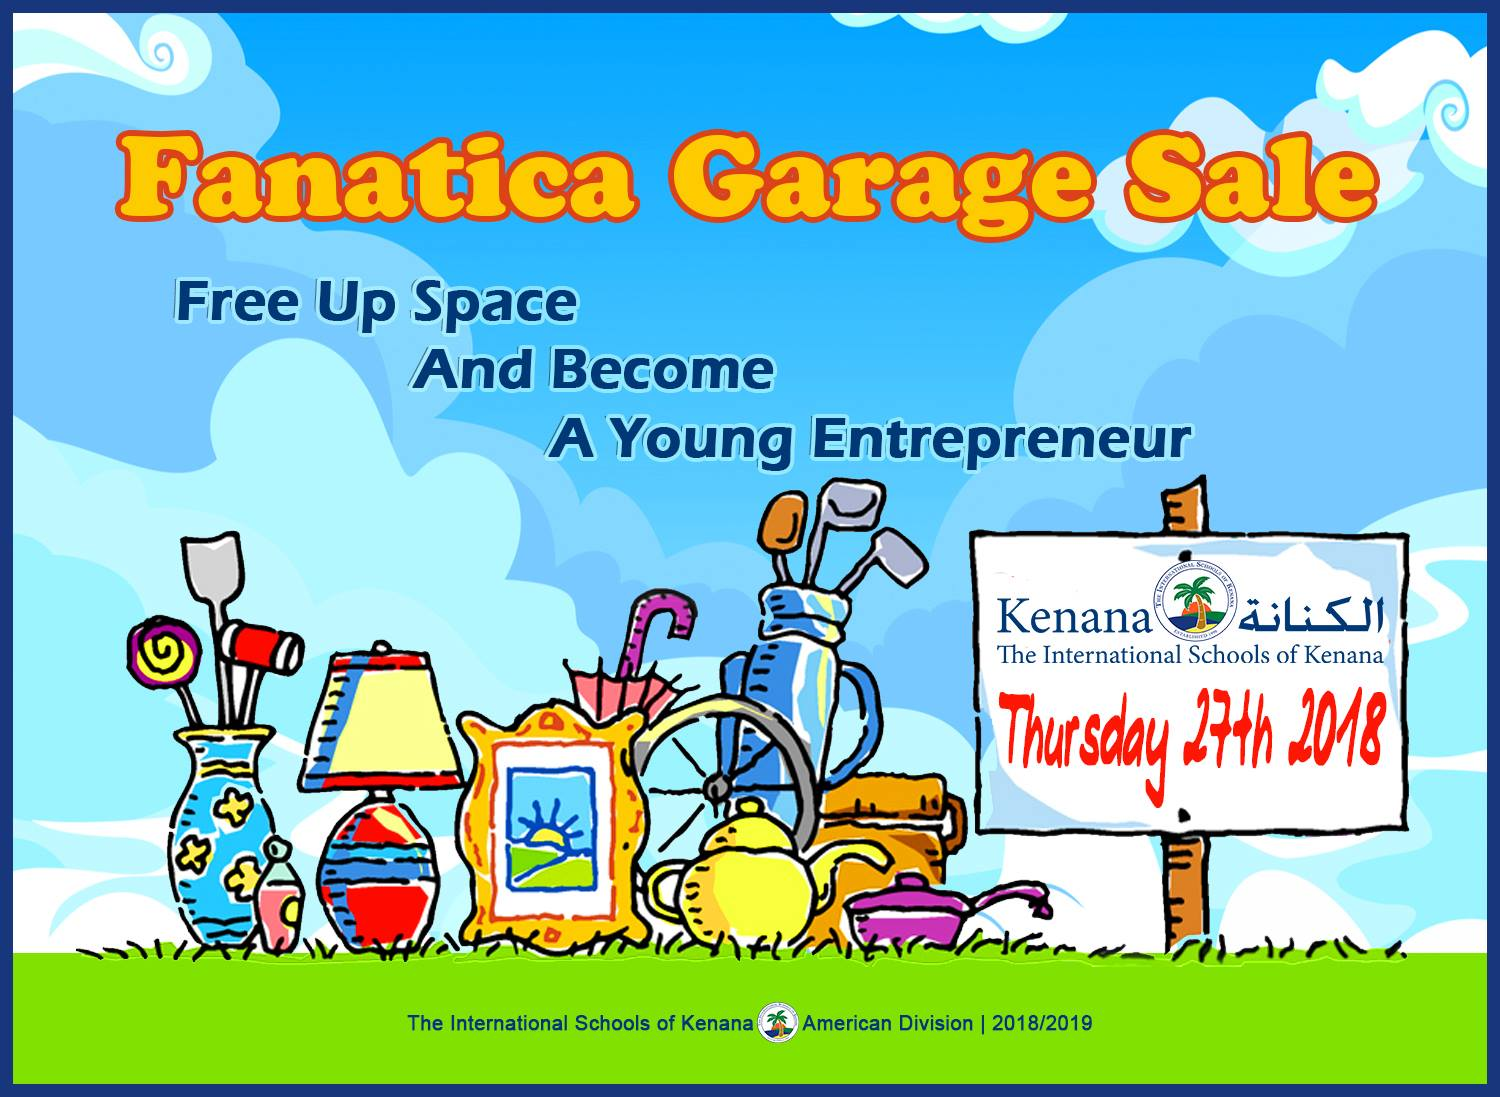 International Schools of Kenana | American Division - Fanatica Garage Sale